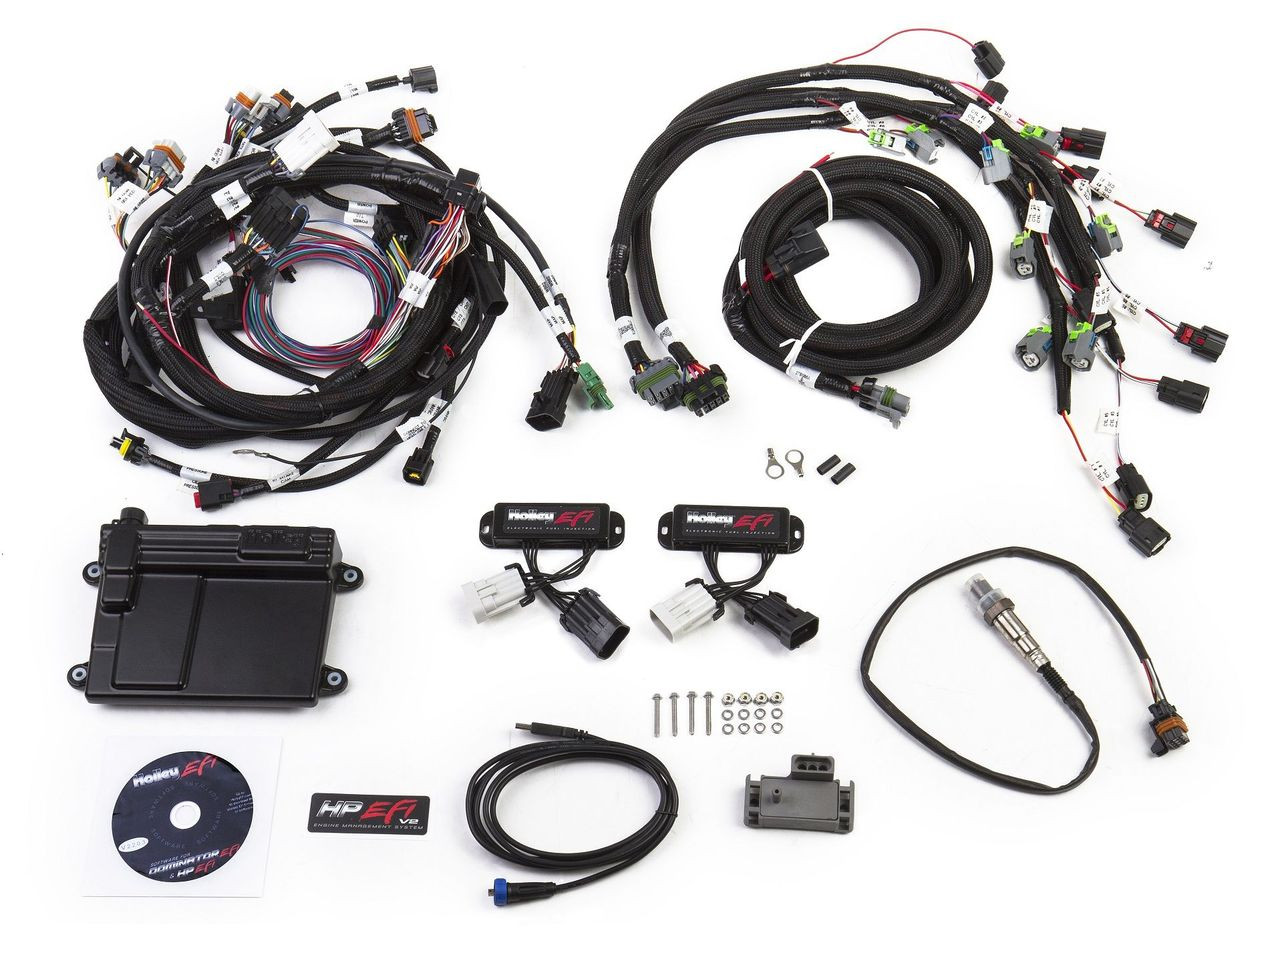 Holley Efi 550 618 Complete Plug And Play 50 Coyote Engine Harness 302 Wiring Management Locked Vvt